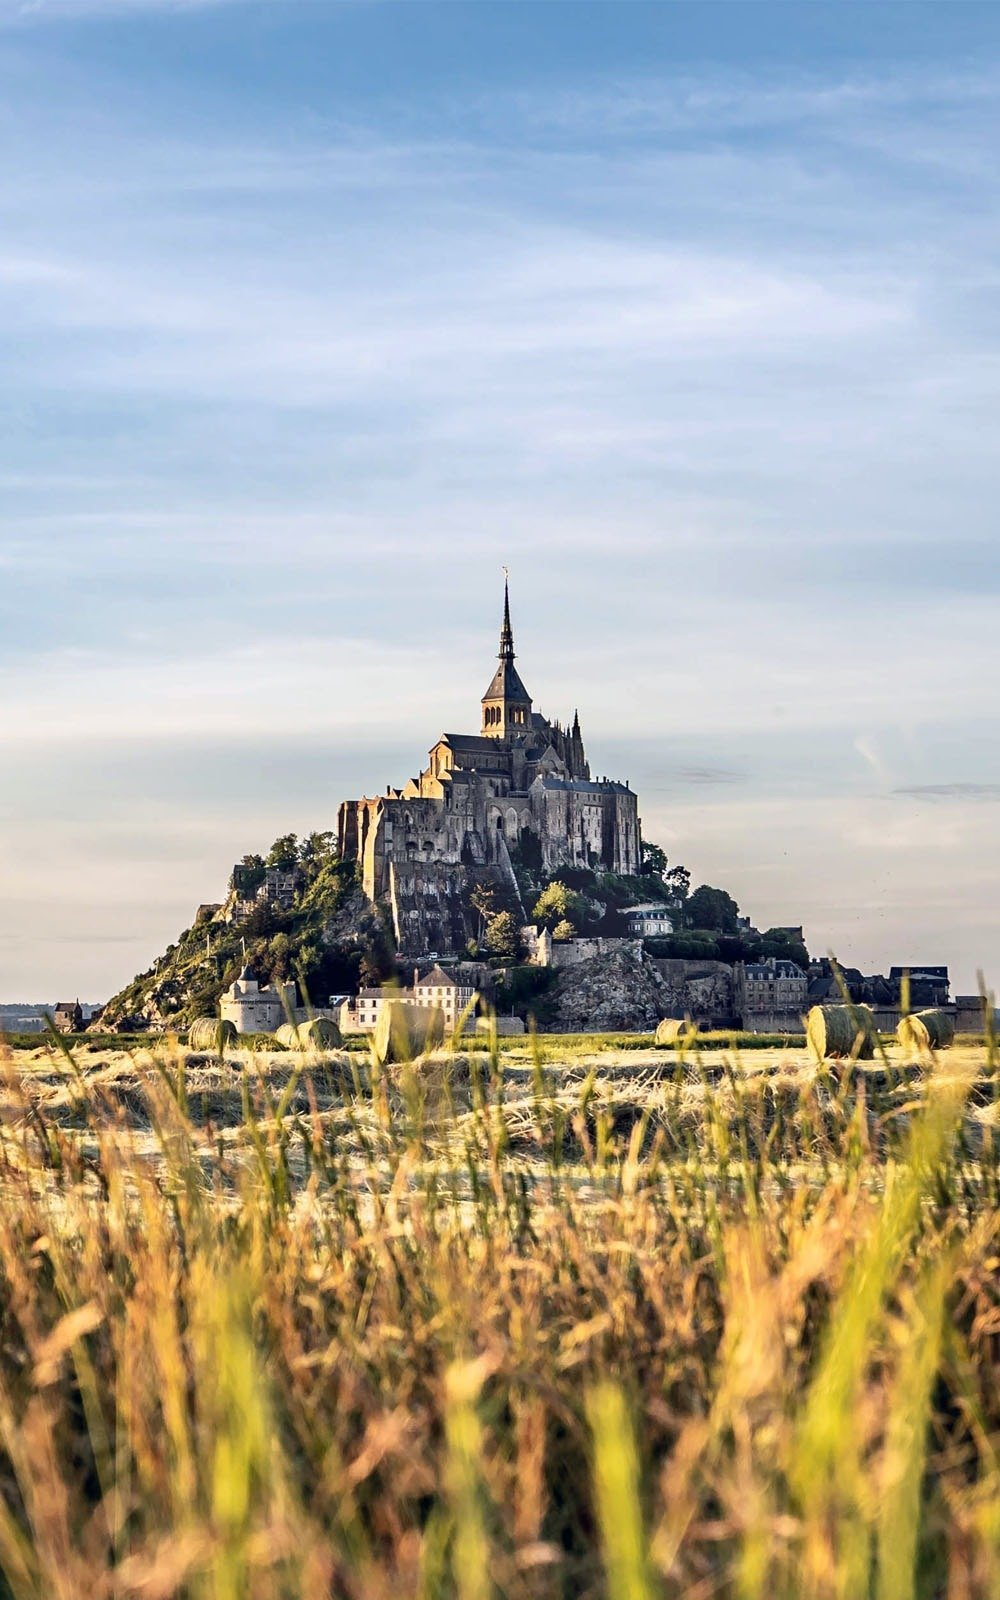 History buffs will love this road trip through medieval castles and World War 2 sites in Normandy and the Loire Valley. Visit the historic Omaha Beach, then head to the impressive Mont Saint-Michel, an island commune perched on a rocky peak. Click through for more fantastic ideas for your road trip in France.